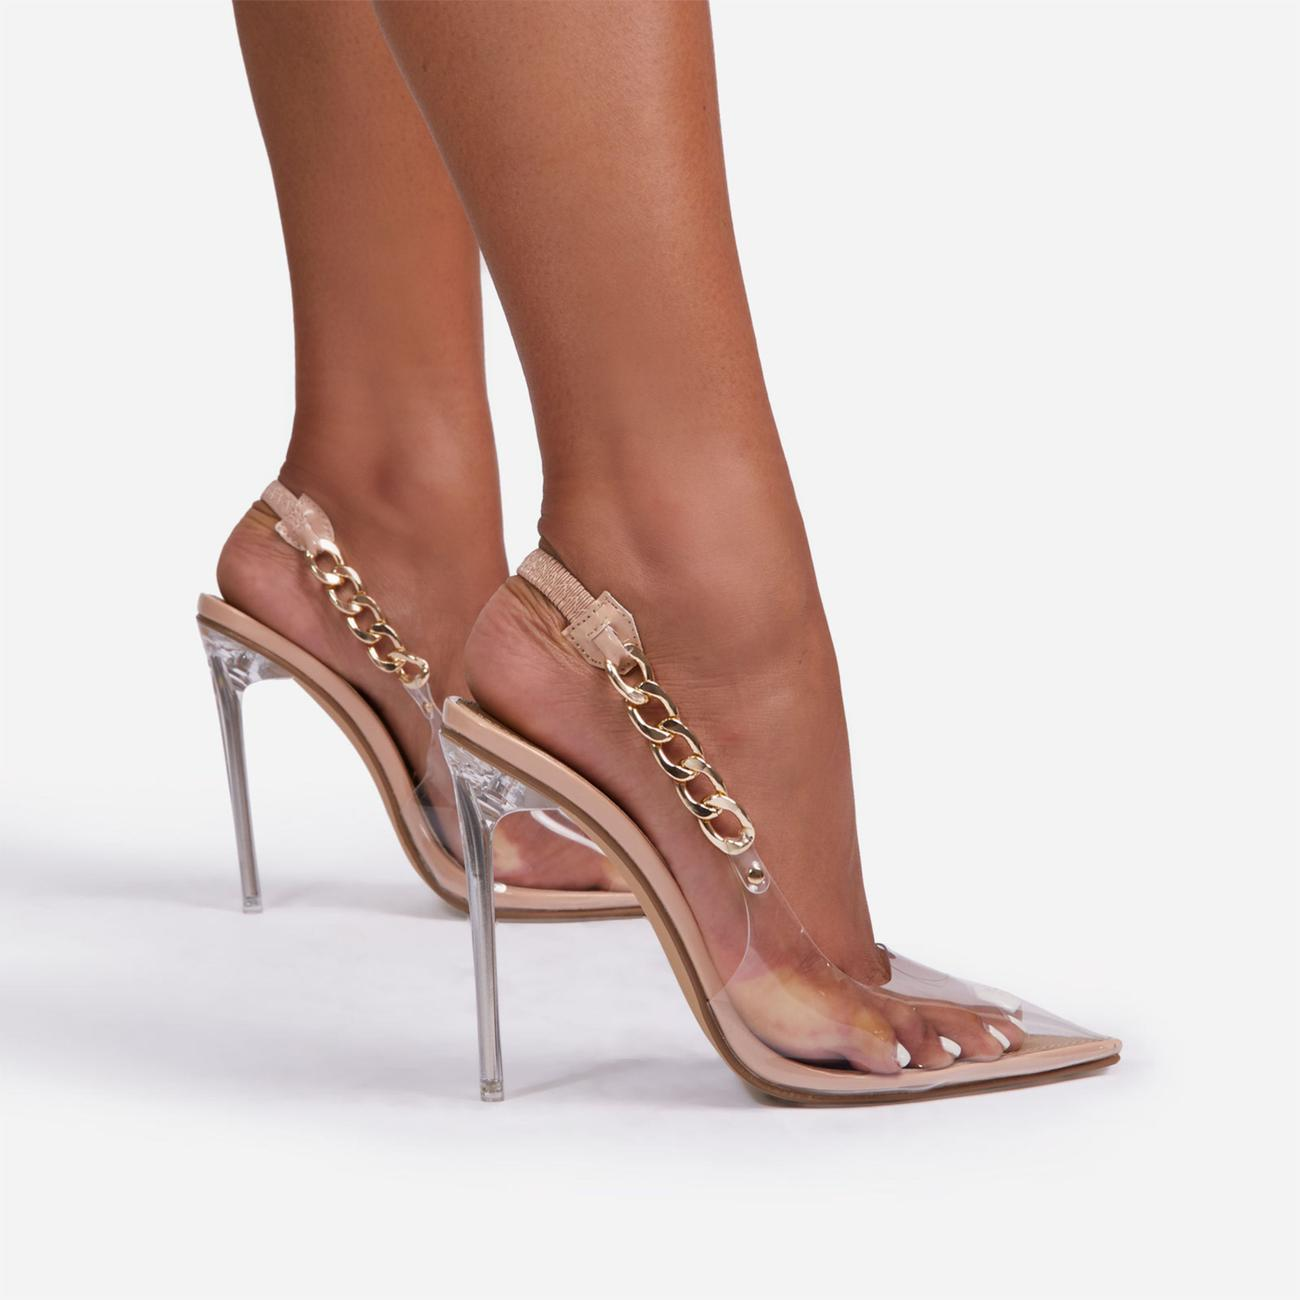 Martini Chunky Chain Detail Sling Back Clear Perspex Heel In Nude Faux Leather Image 2